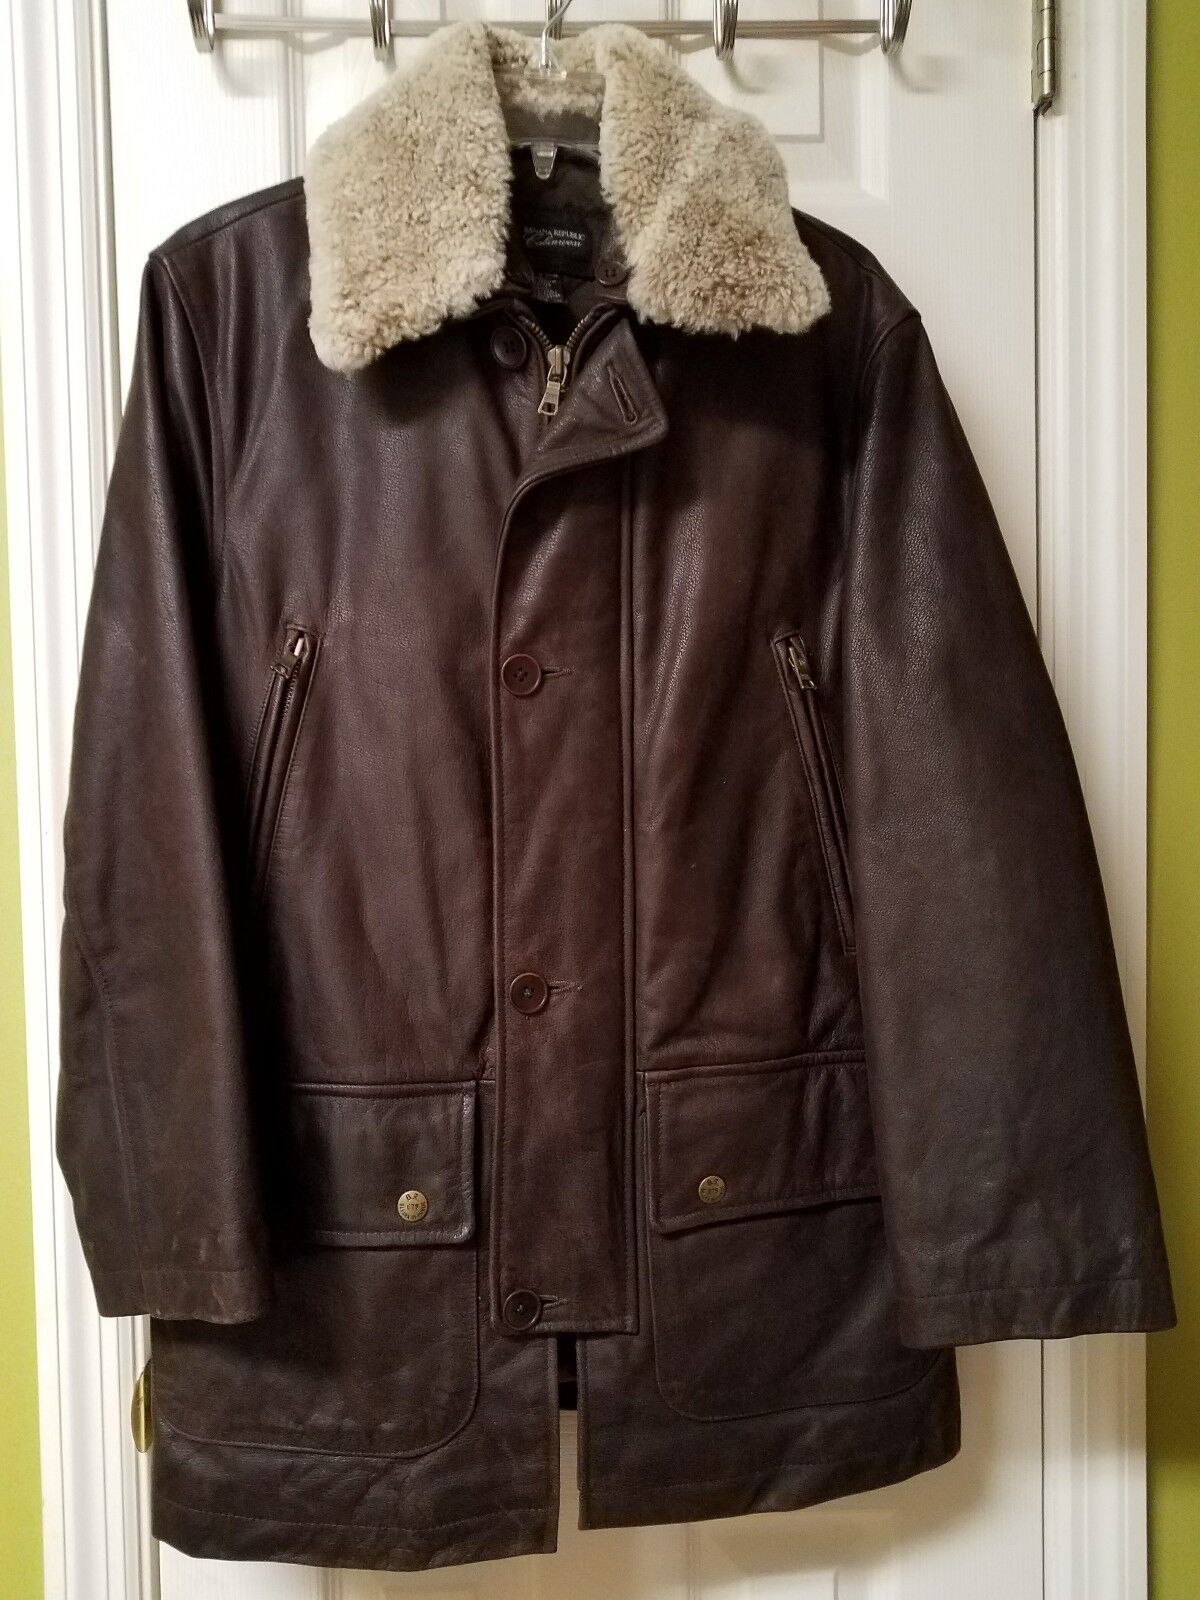 Structure Chocolate braun leder jacke with Fur Coat Neck Größe XS